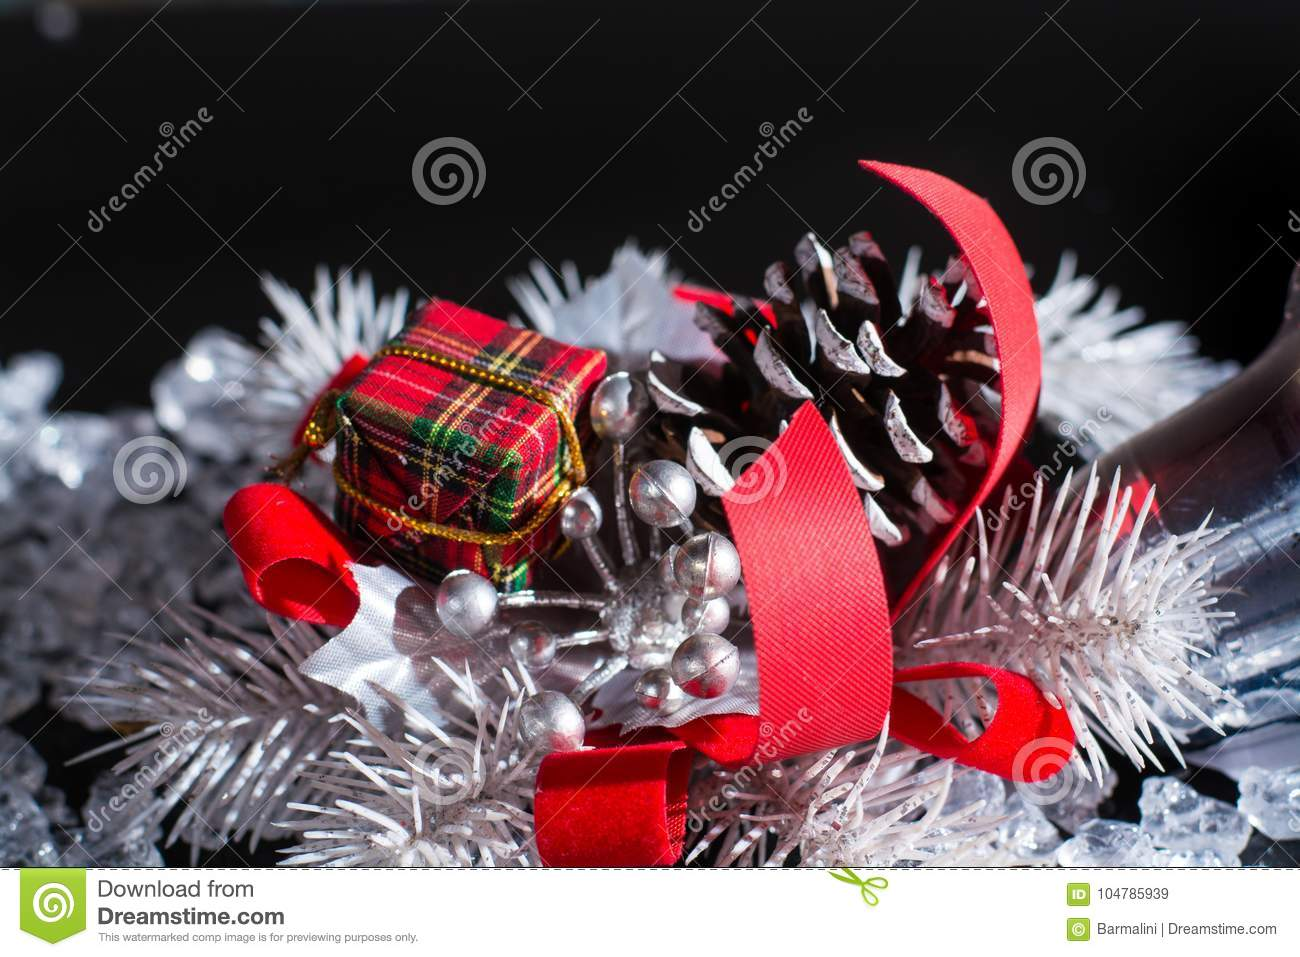 download red and white christmas decoration close up on black backgroun stock image